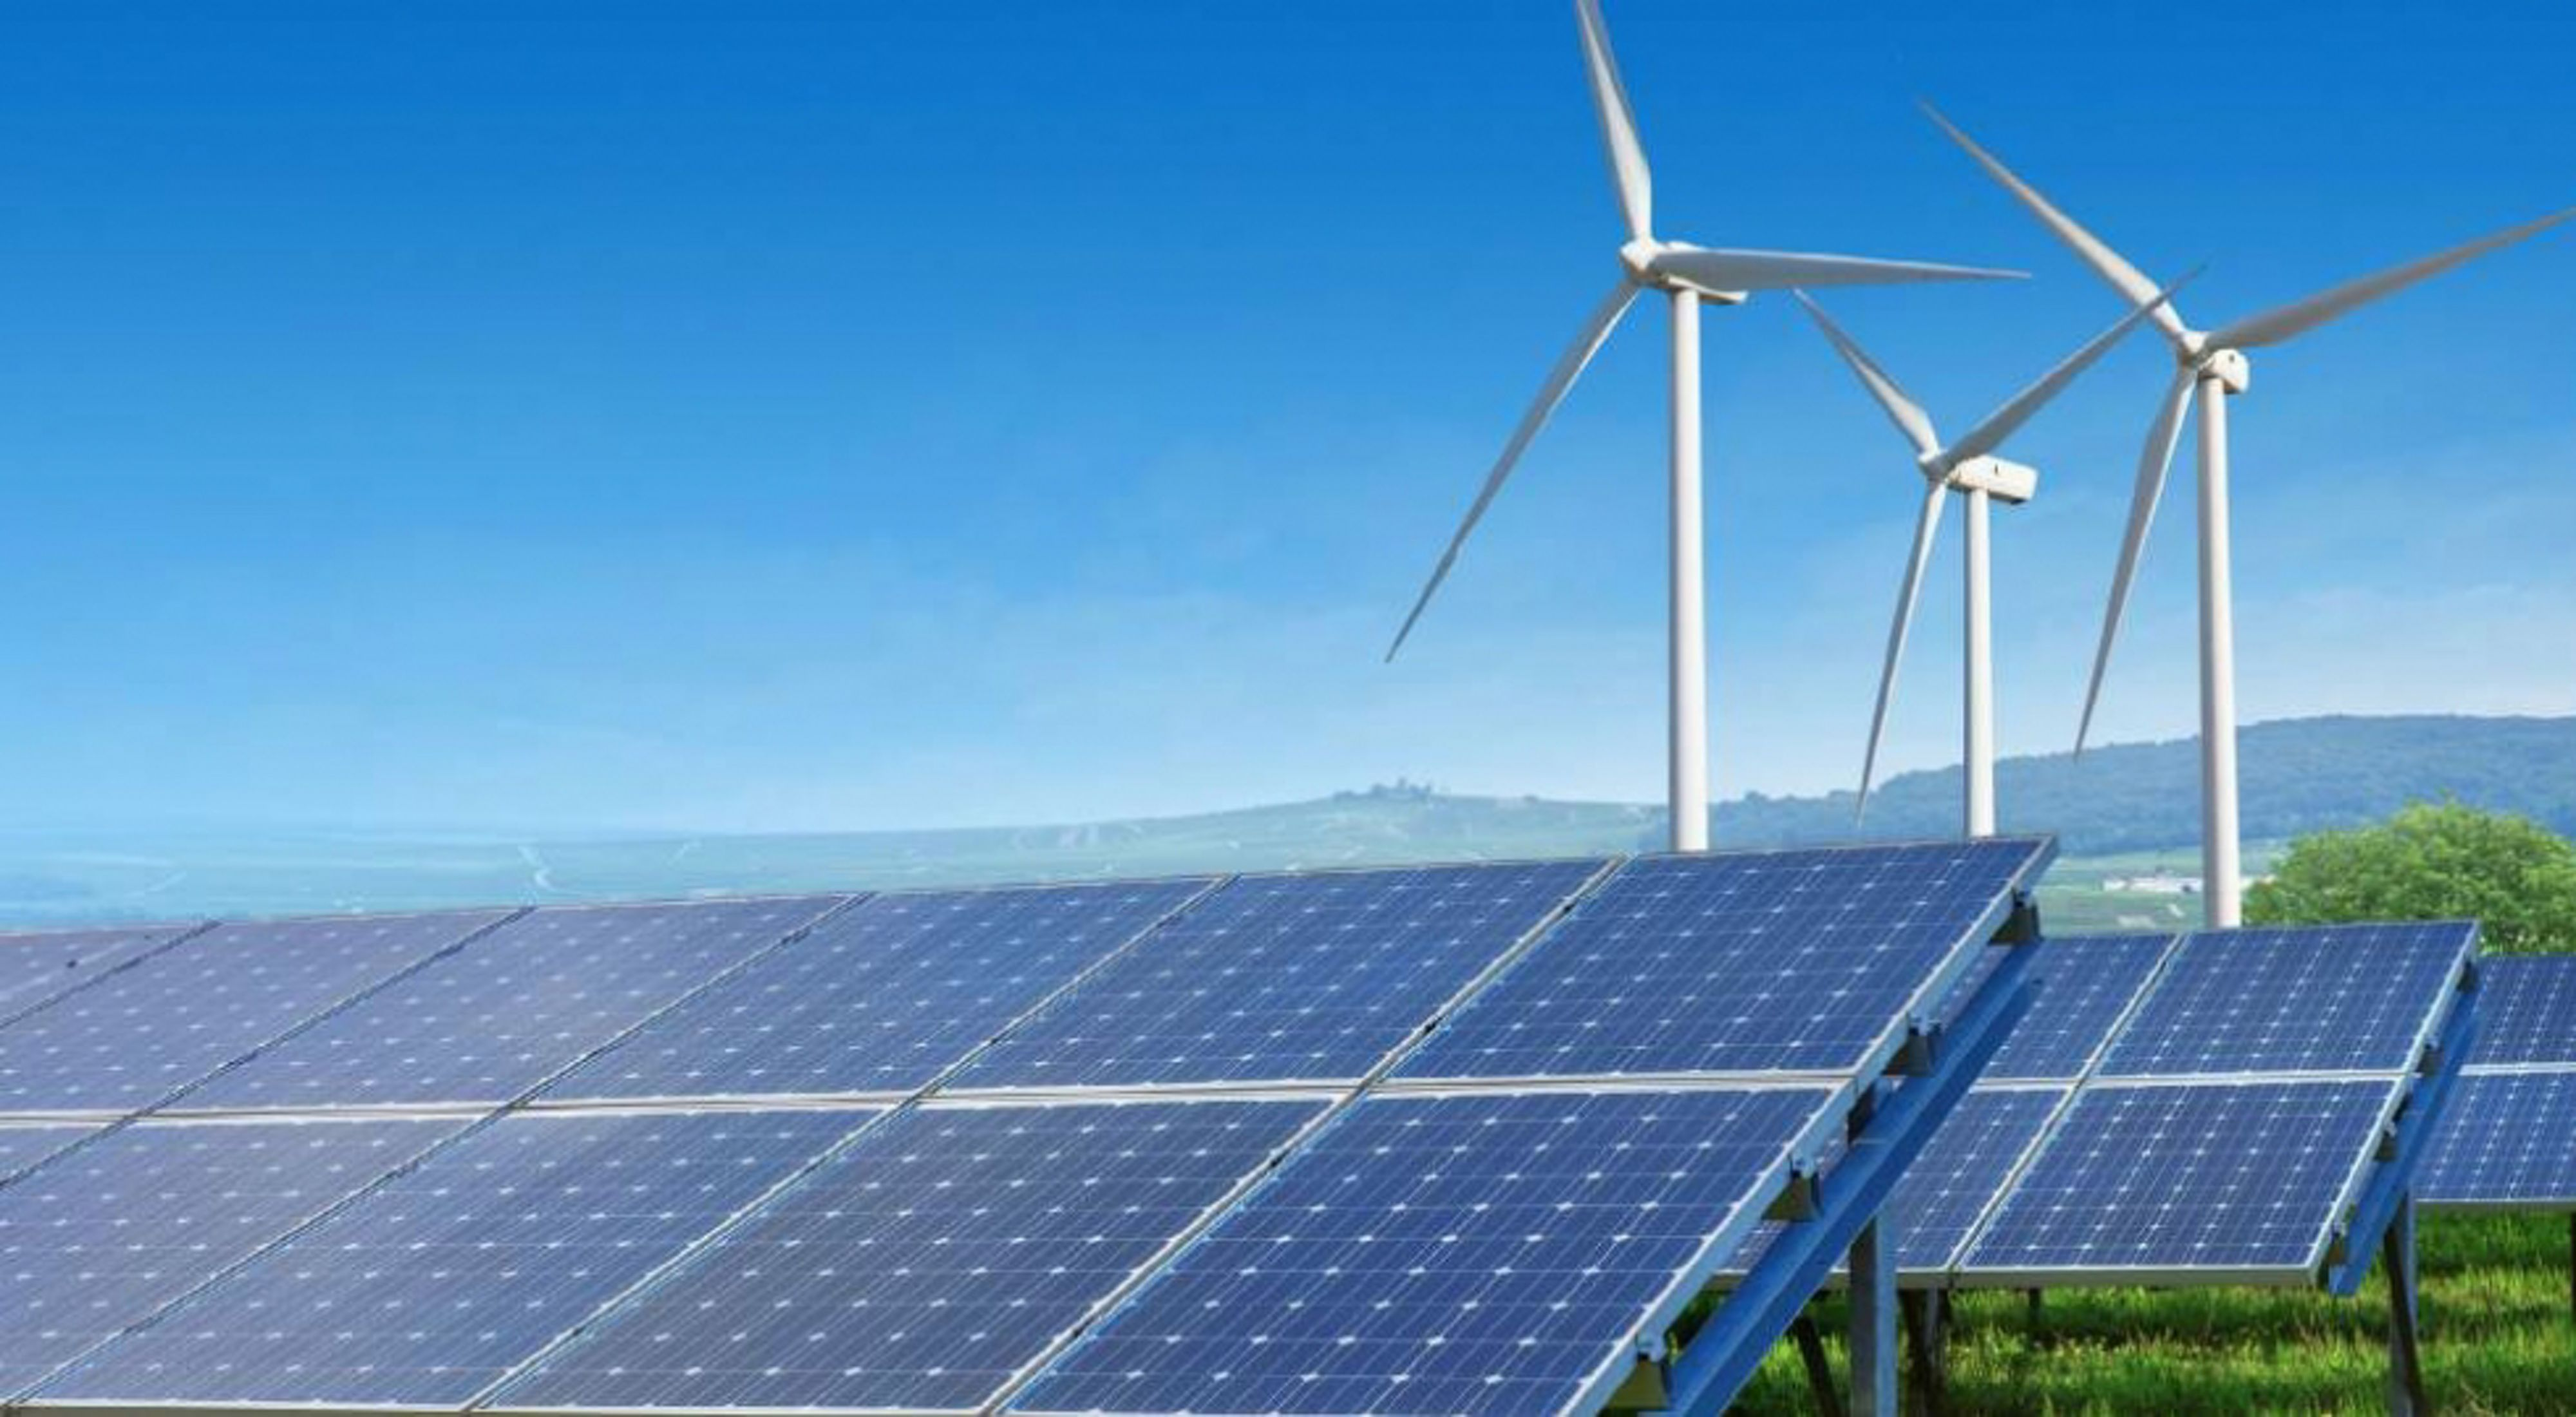 India aims to install 450 GW of renewable energy by 2030.